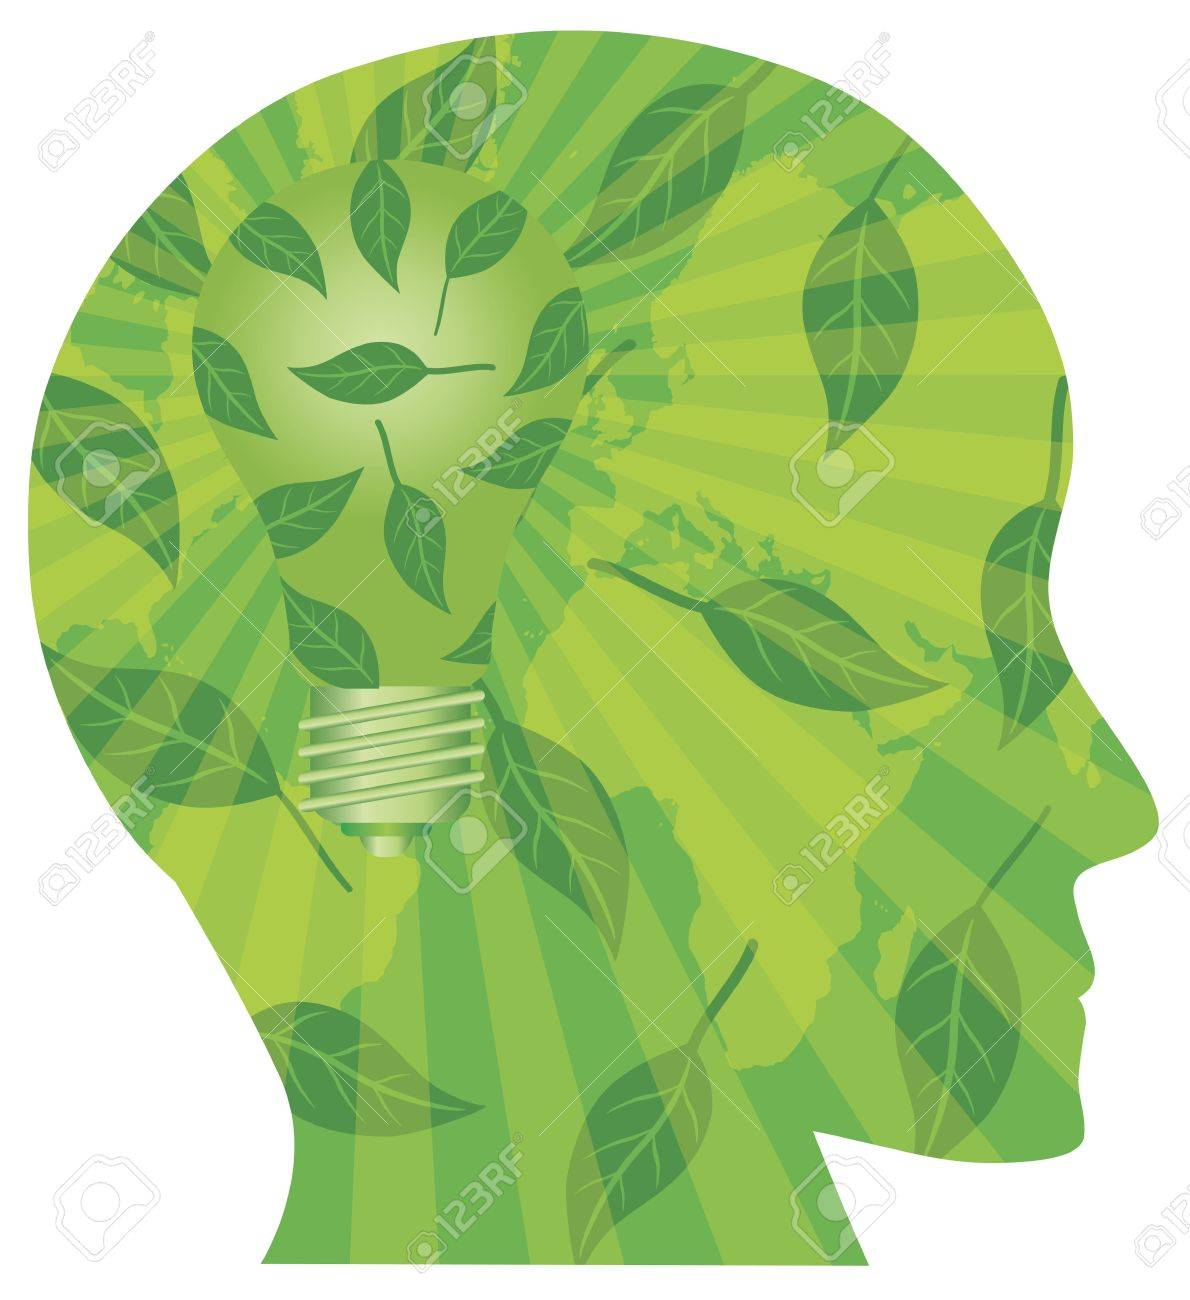 Human Head Silhouette with Light Bulb Go Green Leaves and World Map Illustration Isolated on White Background Stock Vector - 16221430